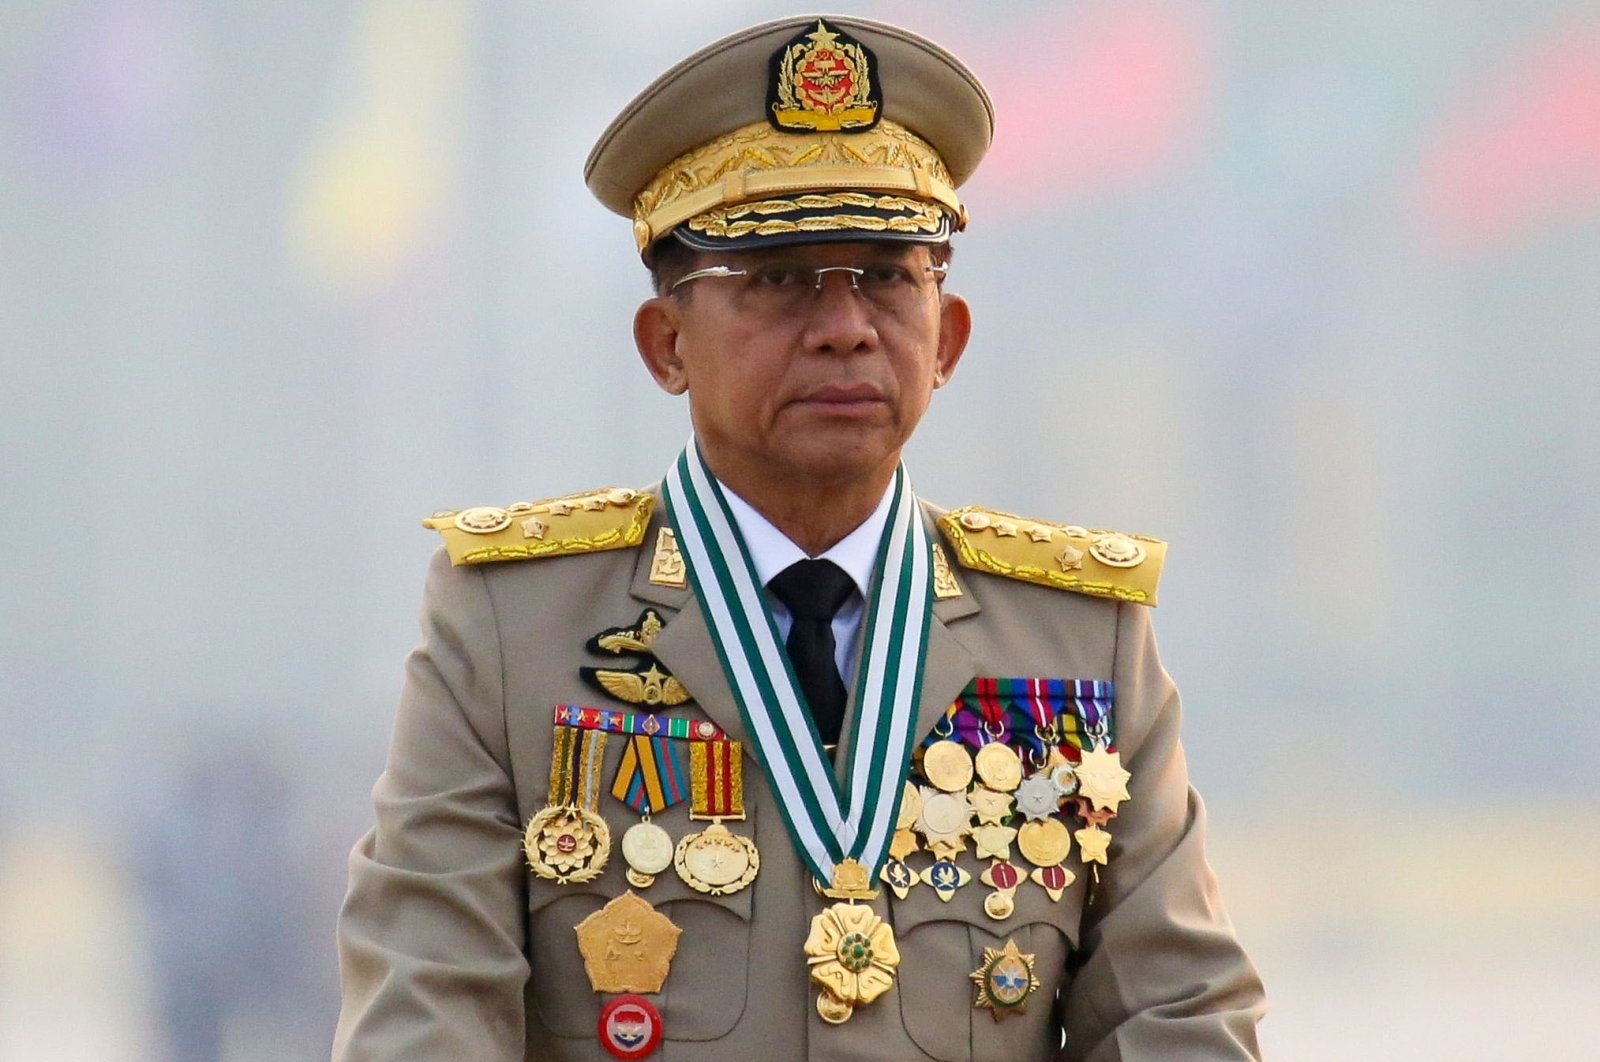 Myanmar's junta chief, Senior Gen. Min Aung Hlaing, who ousted the elected government in a coup on Feb. 1, presides over an army parade on Armed Forces Day in Naypyitaw, Myanmar, March 27, 2021. (Reuters File Photo)